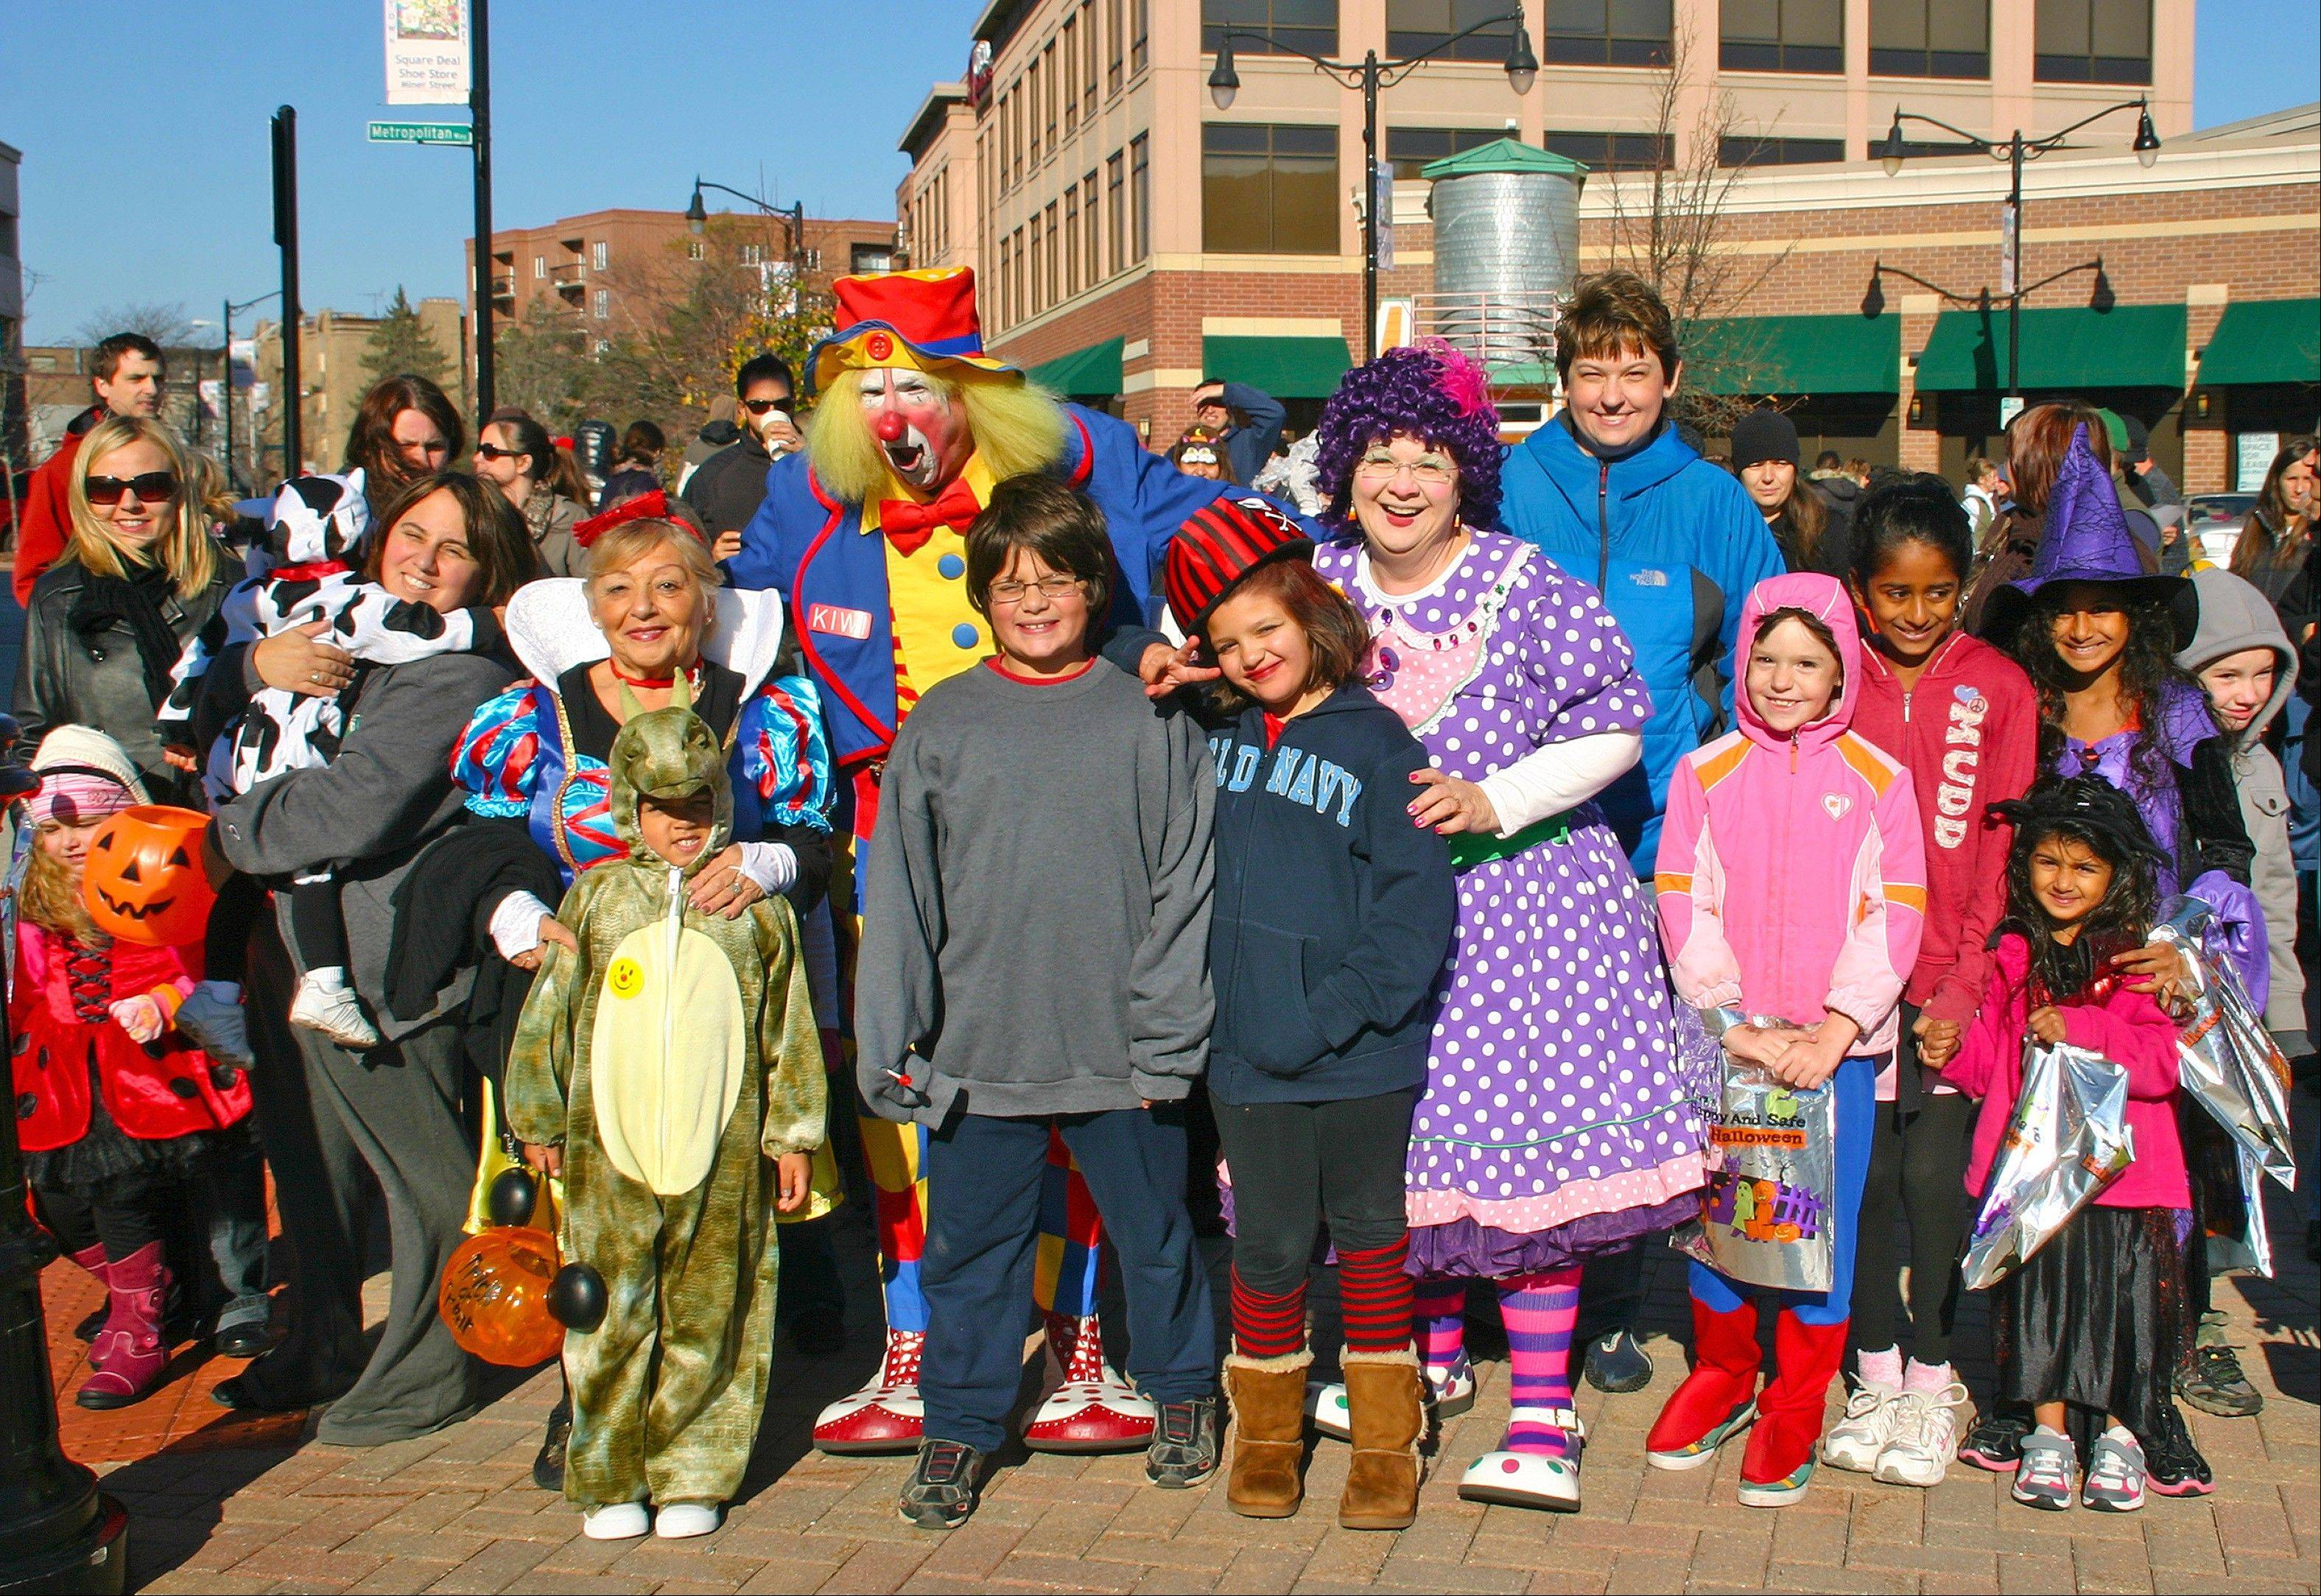 Join Kiwi, left, and Jewels in the annual Halloween Hoopla parade and Safe Trick or Treating around Metropolitan Square on Oct. 26.